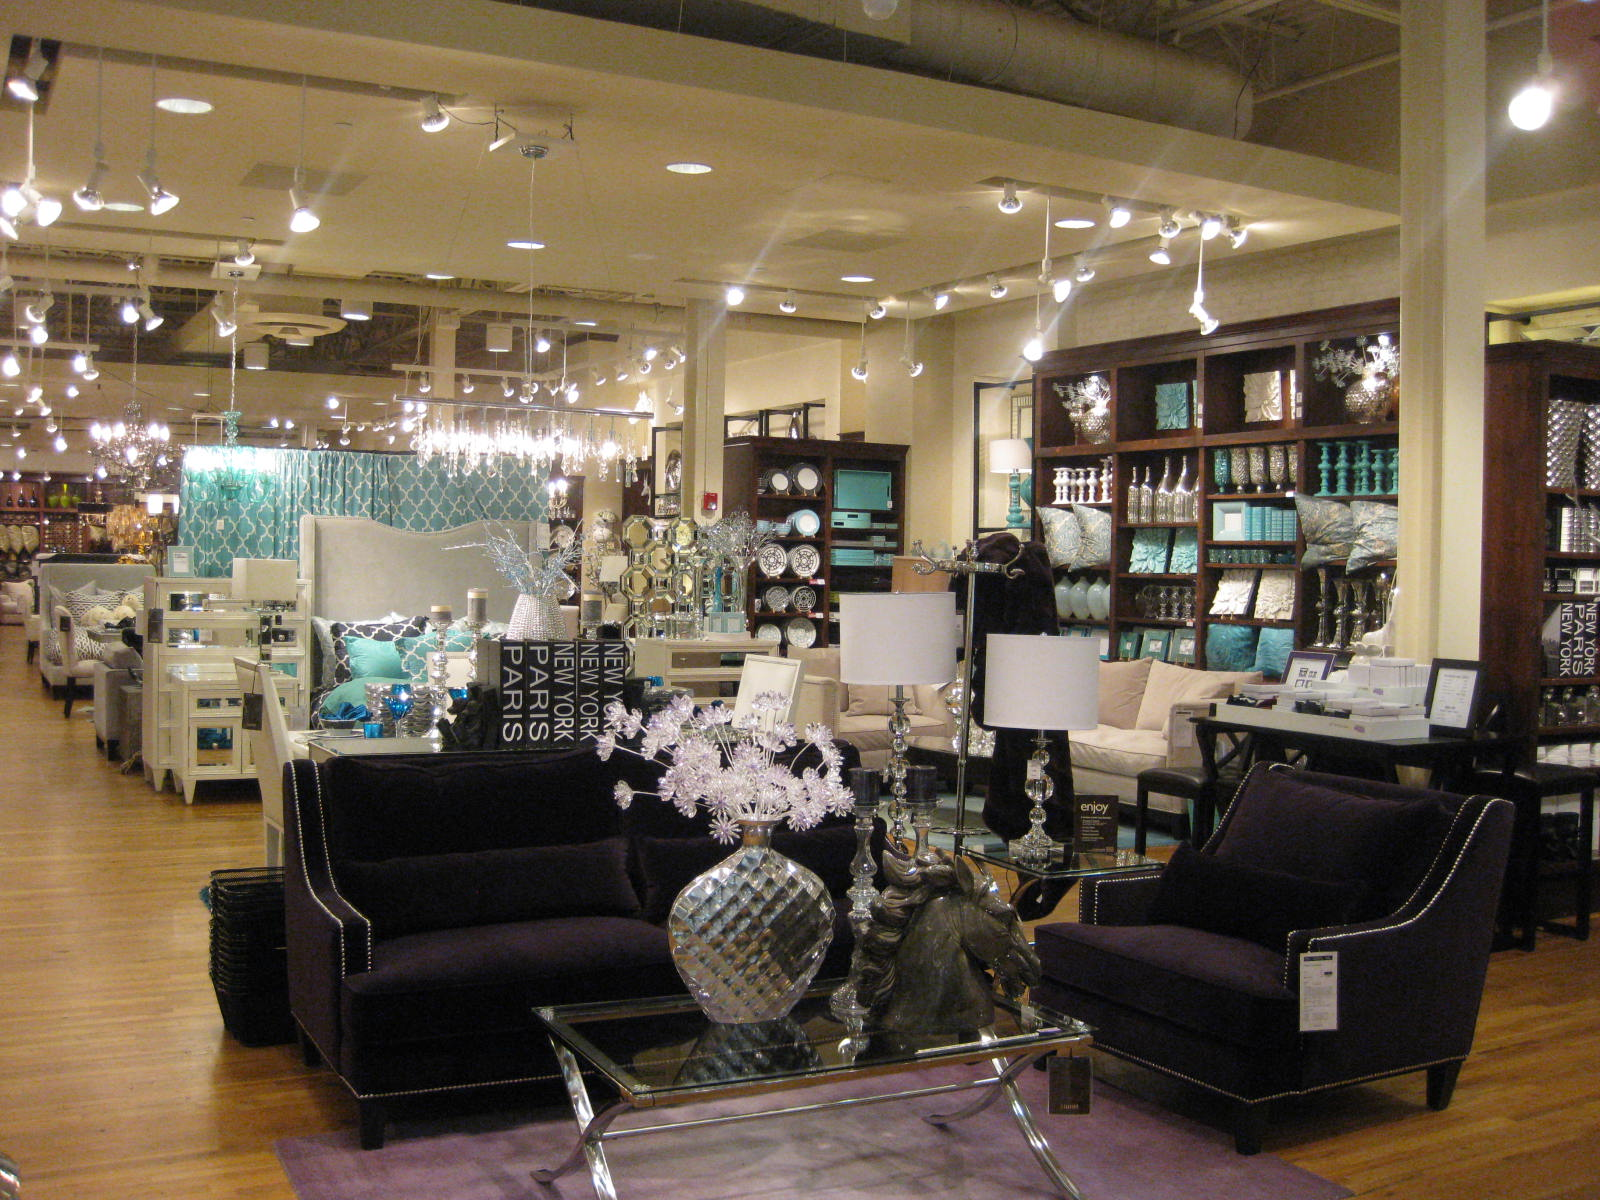 Z Furniture Houston Of Z Gallerie Outlet Gallery Of Zgallerie Furniture Galleria